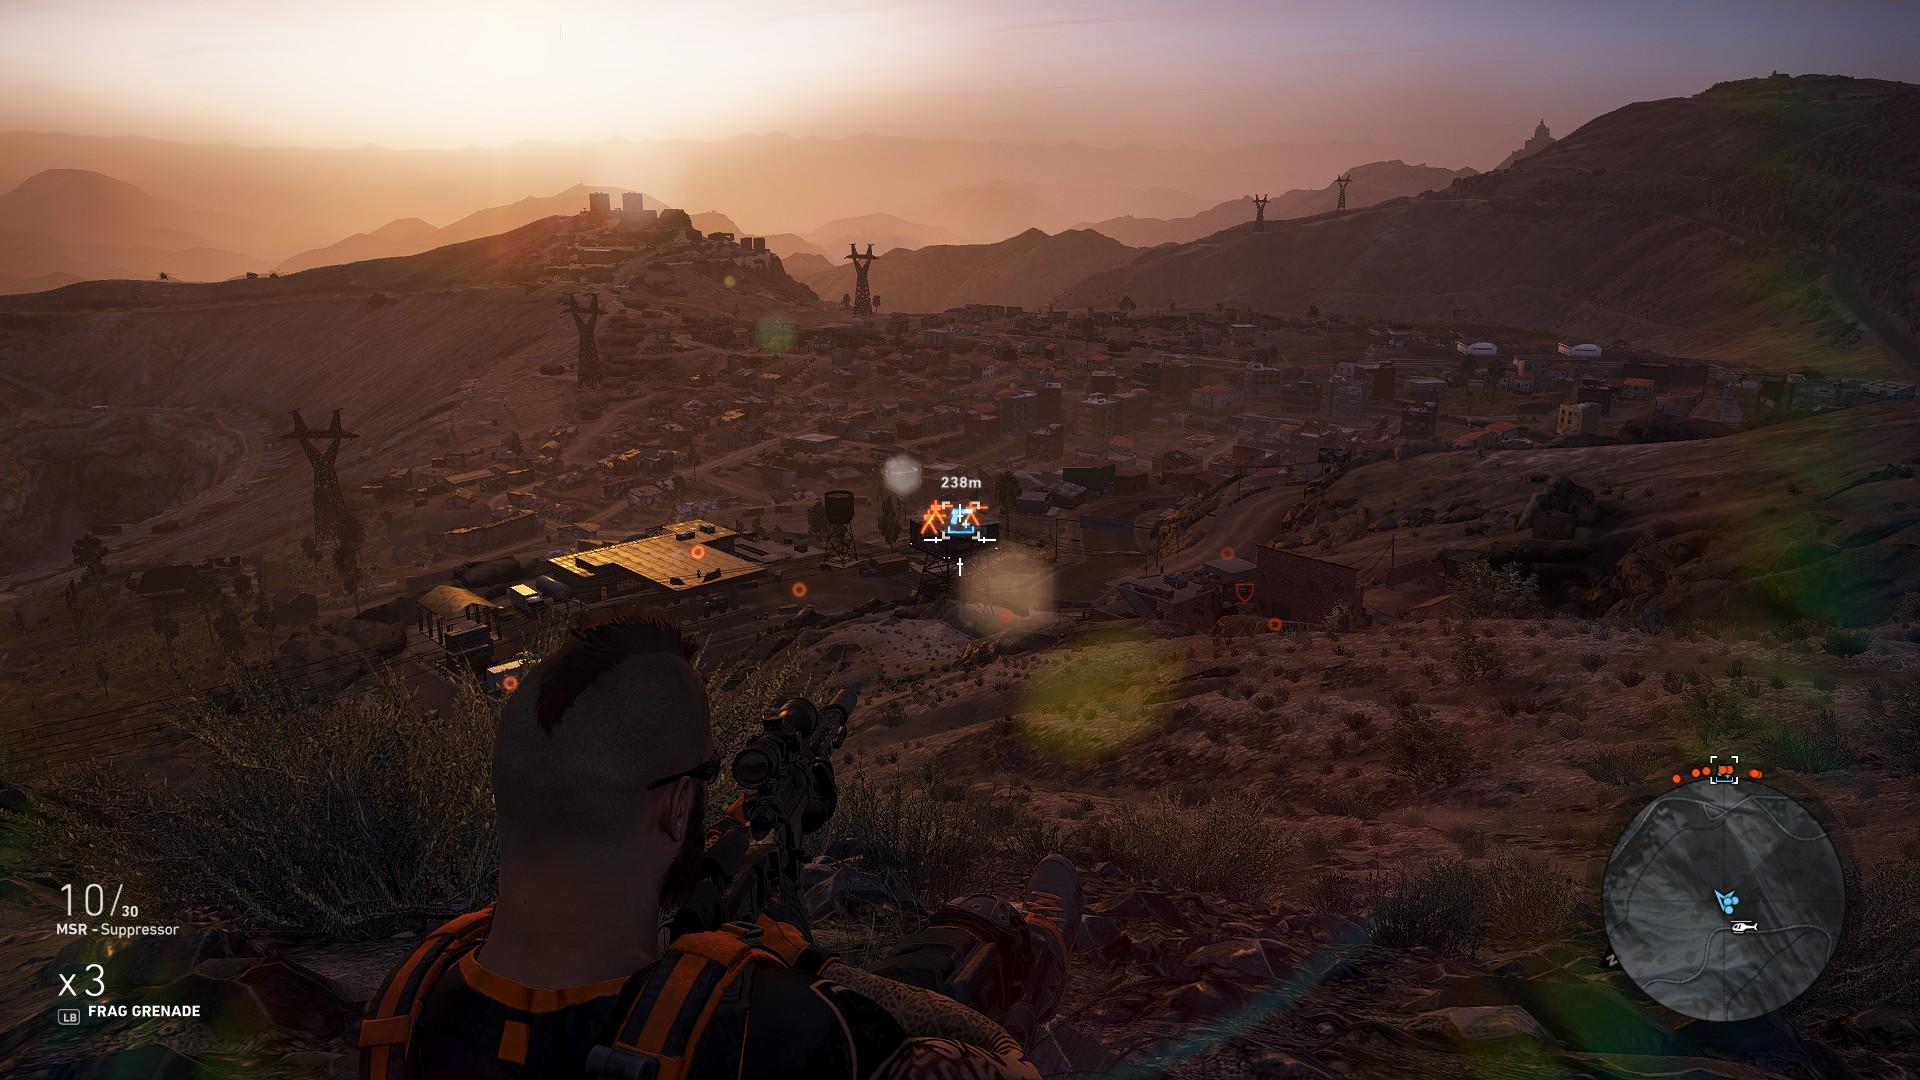 Image of the MP7 area - MP7 location in Ghost Recon Wildlands